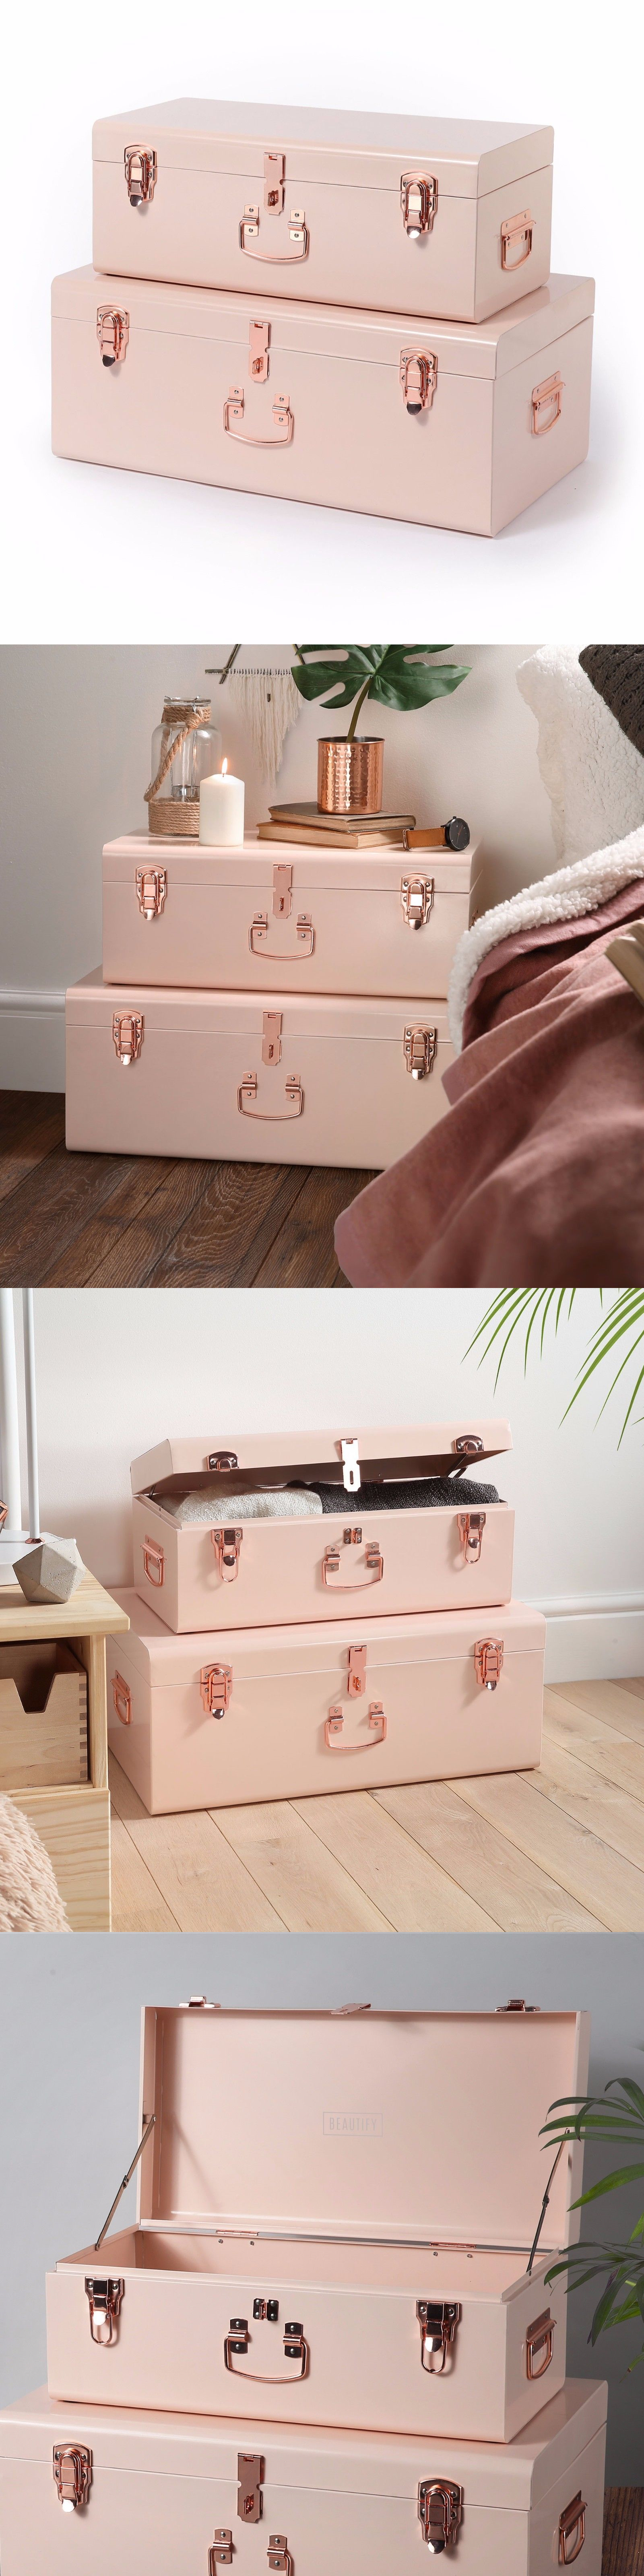 Delicieux Trunks And Chests 125085: Beautify Large Blush Pink Steel Storage Trunk  Chest Set Dorm Bedroom